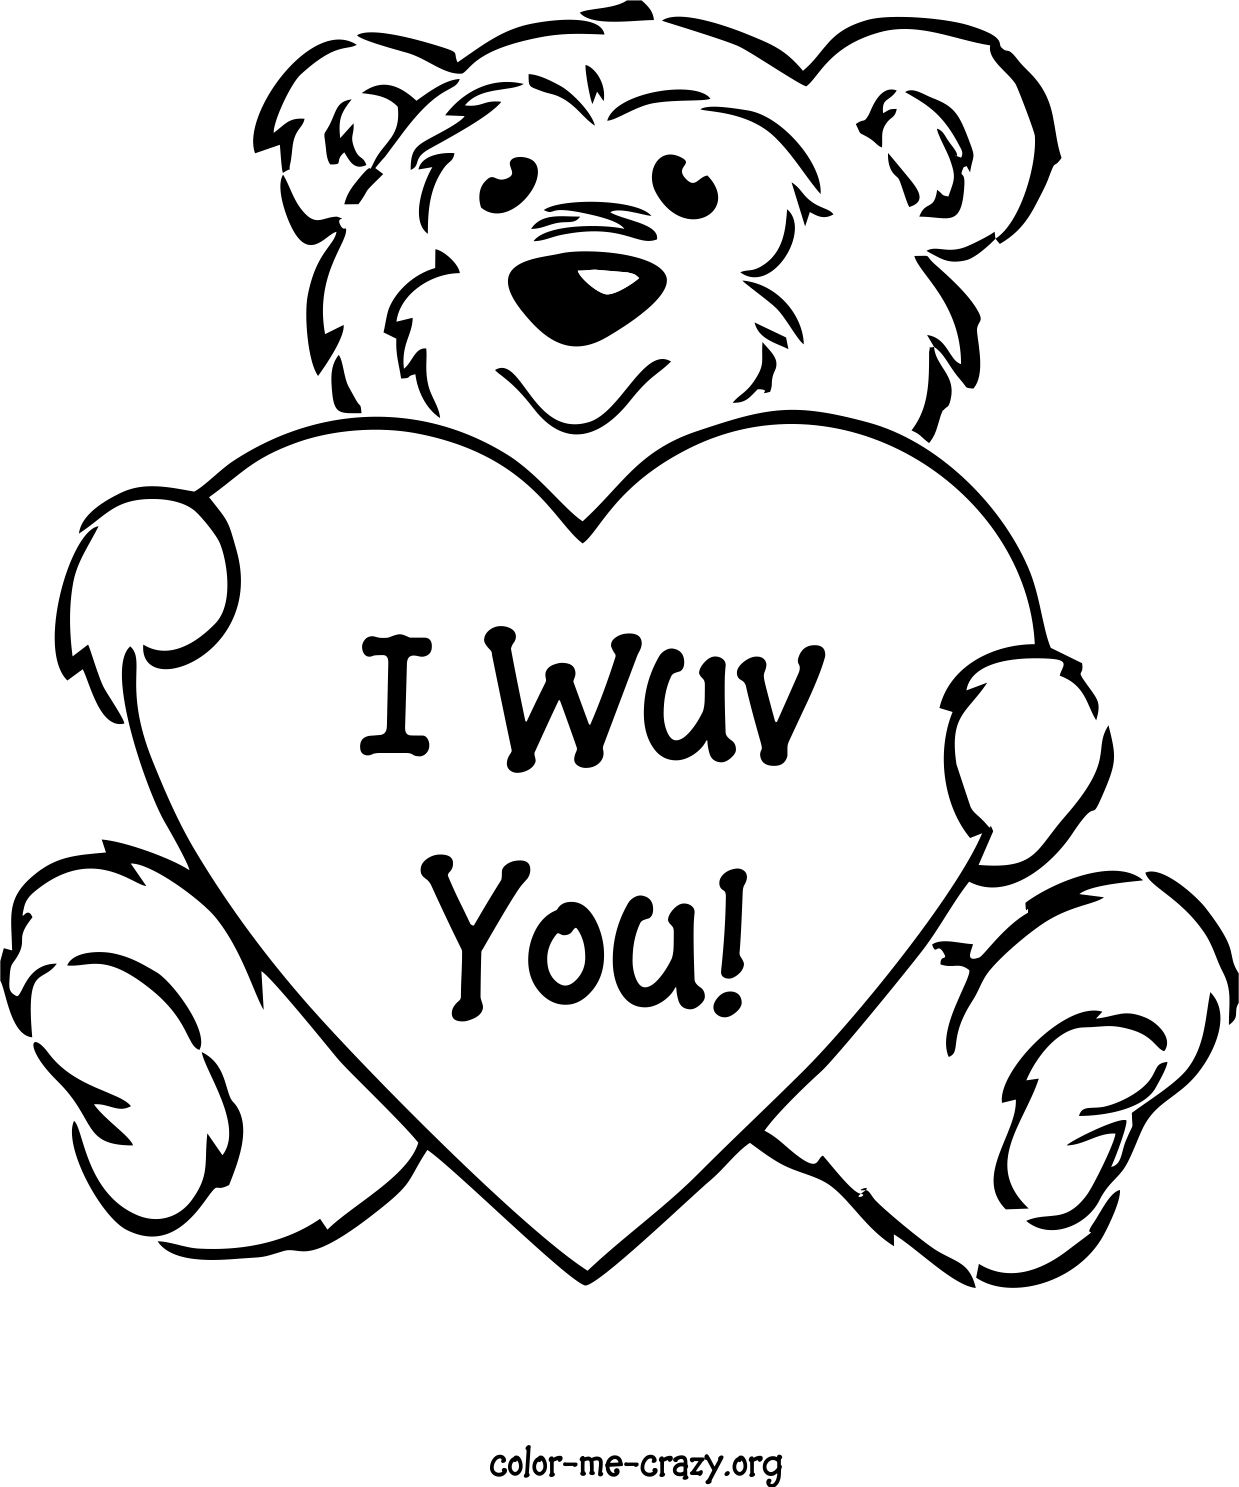 Winnie The Pooh Valentines Day Coloring Pages - GetColoringPages.com | 1487x1239